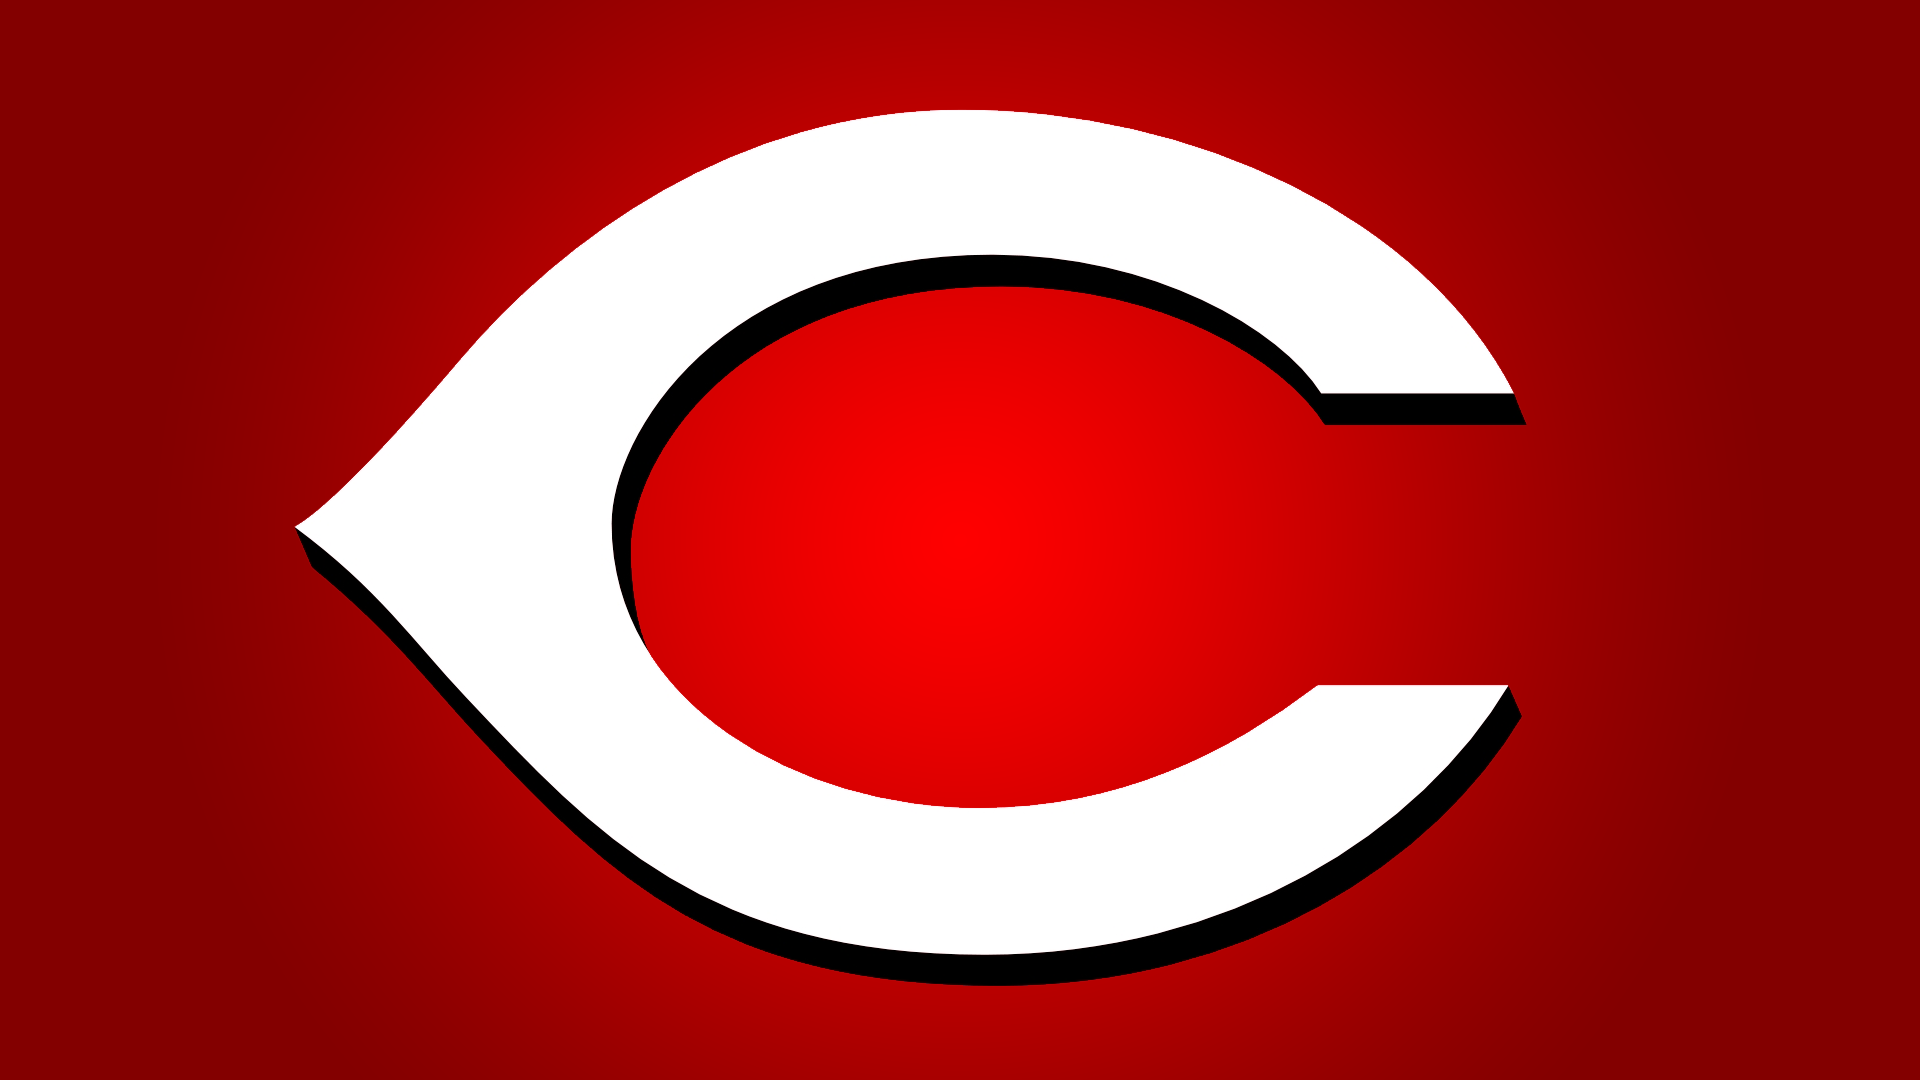 Photo: HDQ Cover Free Cincinnati Reds Pictures, by Tammi Dunlop